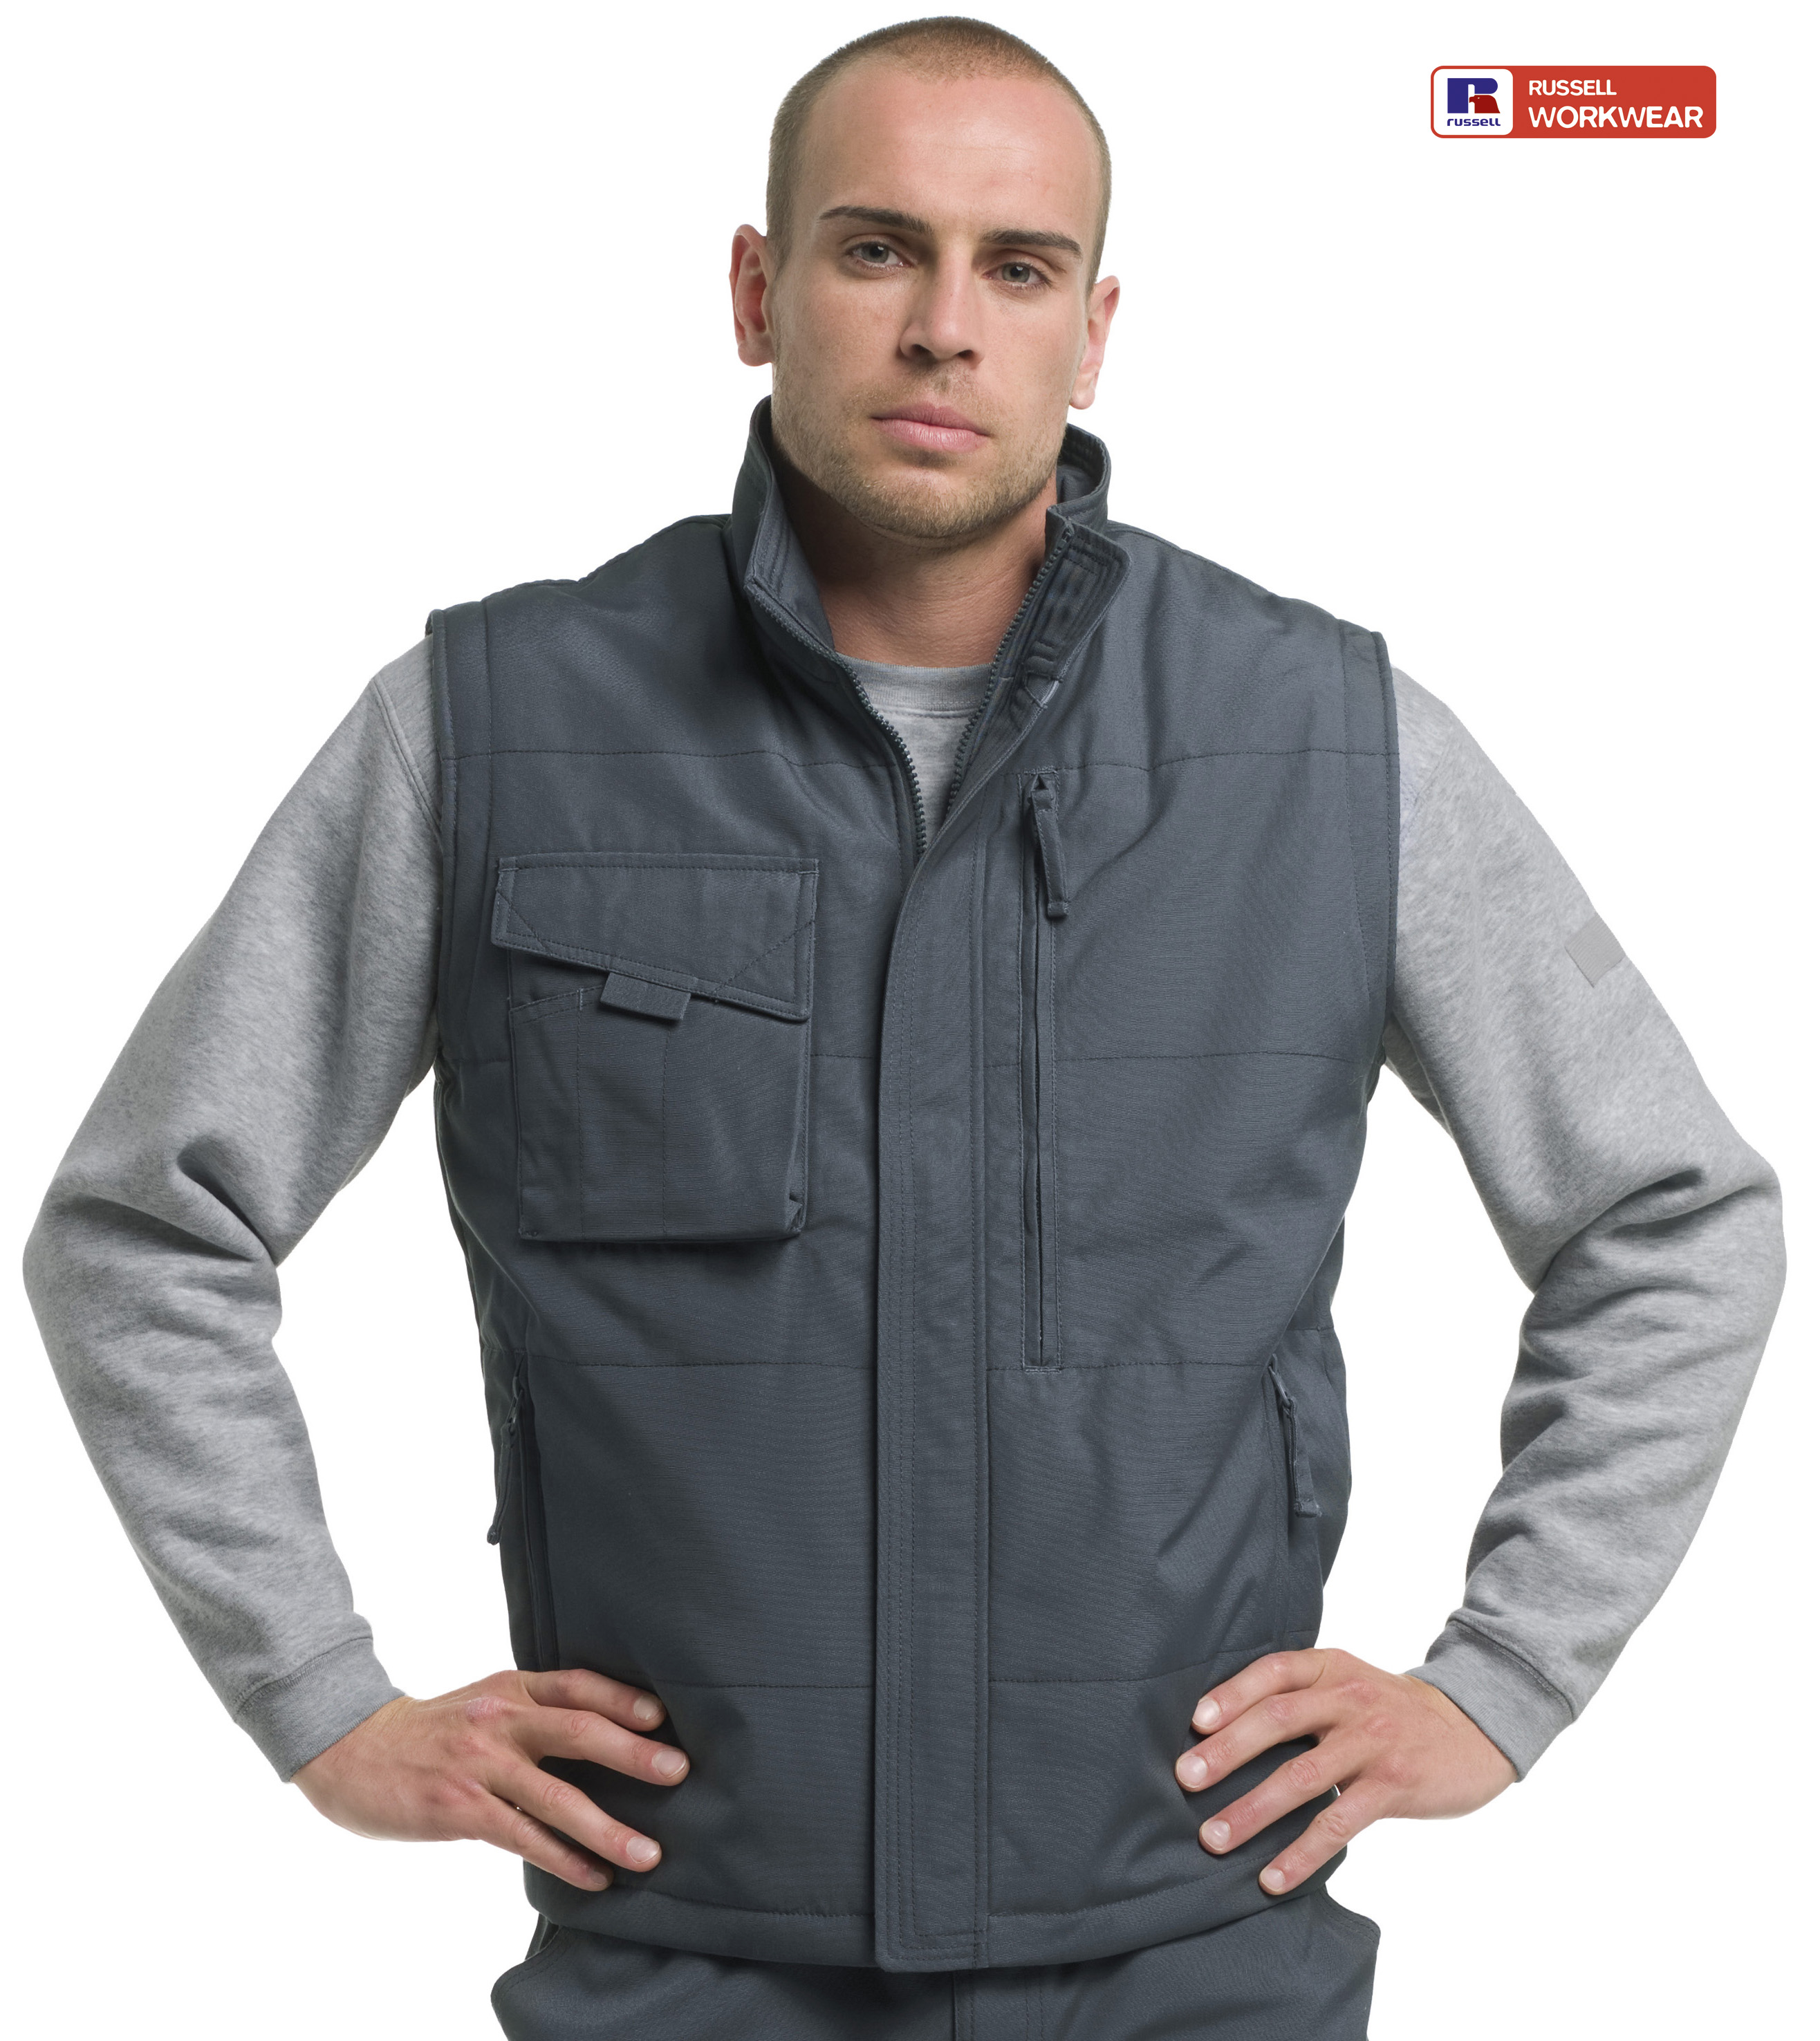 Bodywarmer Workwear